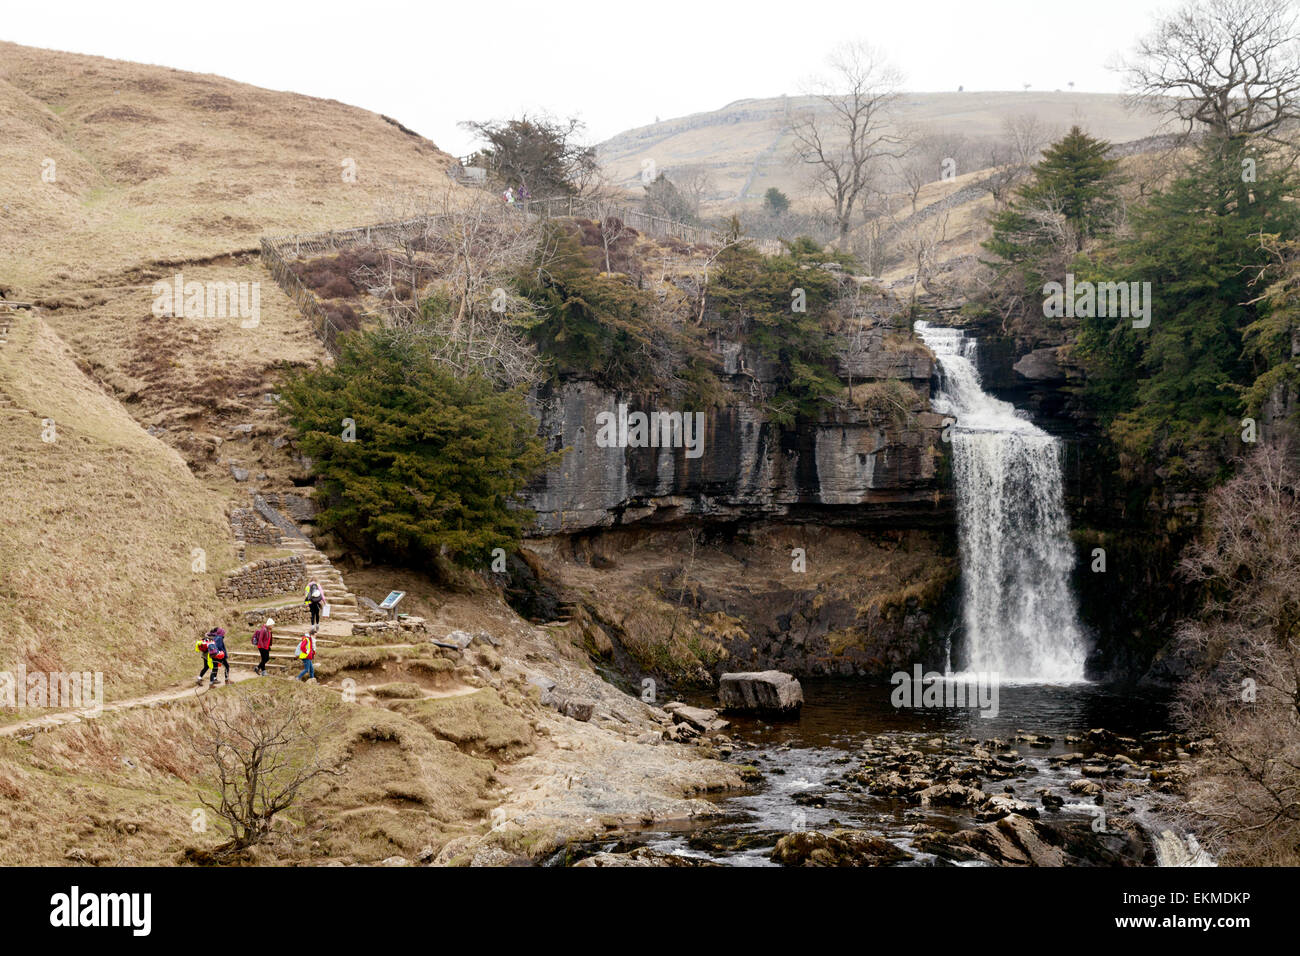 Thornton Force waterfall, part of the Ingleton Waterfalls Trail on the River Twiss, Yorkshire Dales national Park, - Stock Image